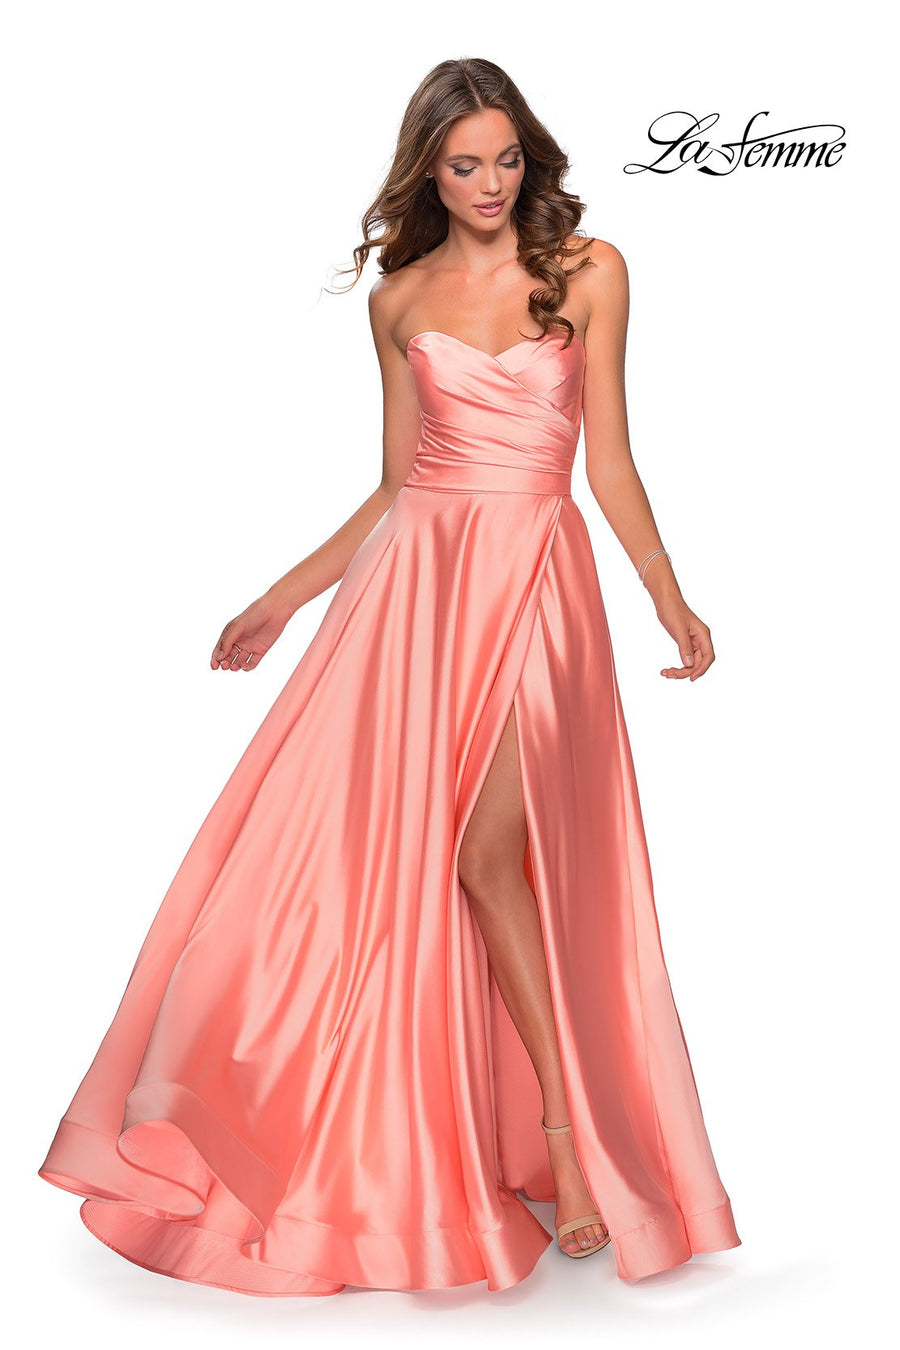 La Femme 28608 prom dress images.  La Femme 28608 is available in these colors: Blush, Emerald, Navy, Pale Yellow, Peach, Silver, White, Wine.